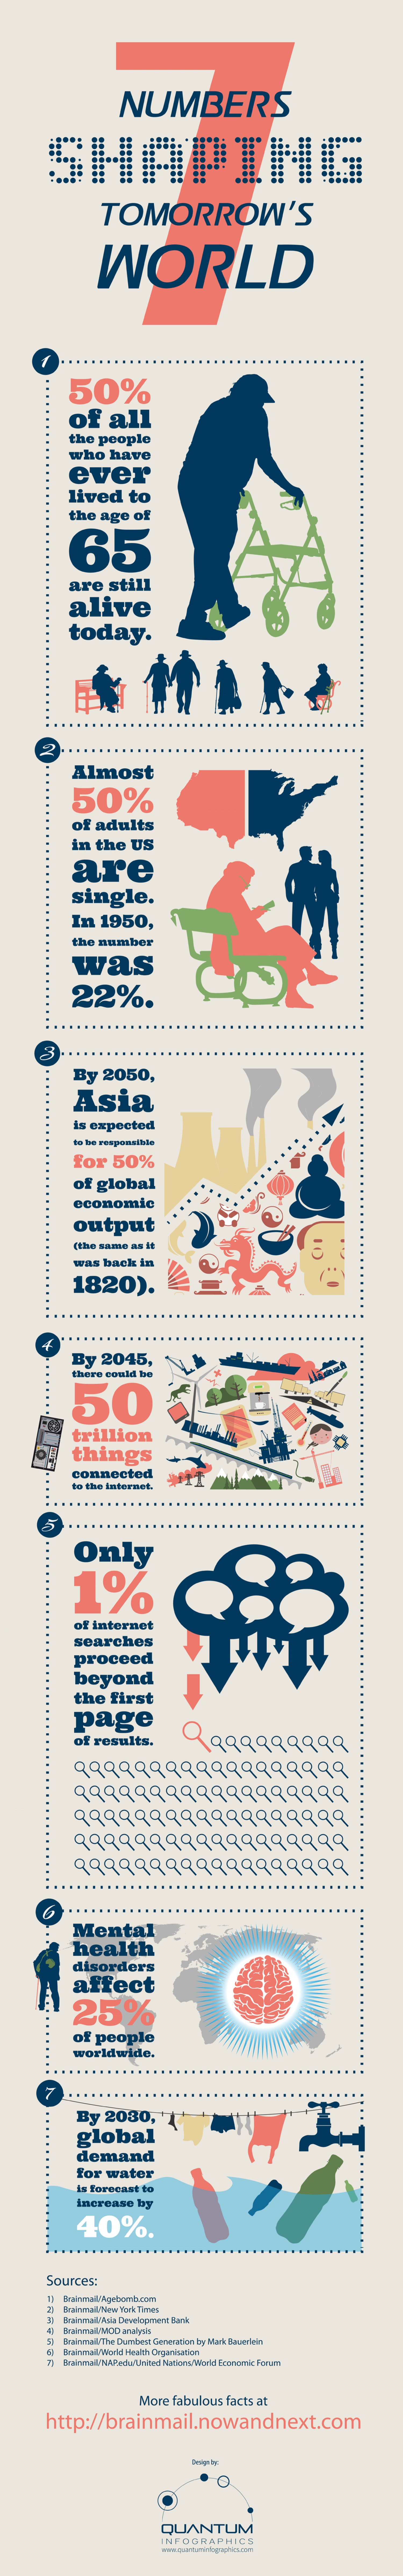 Infographic: 7 Numbers Shaping Tomorrow's World